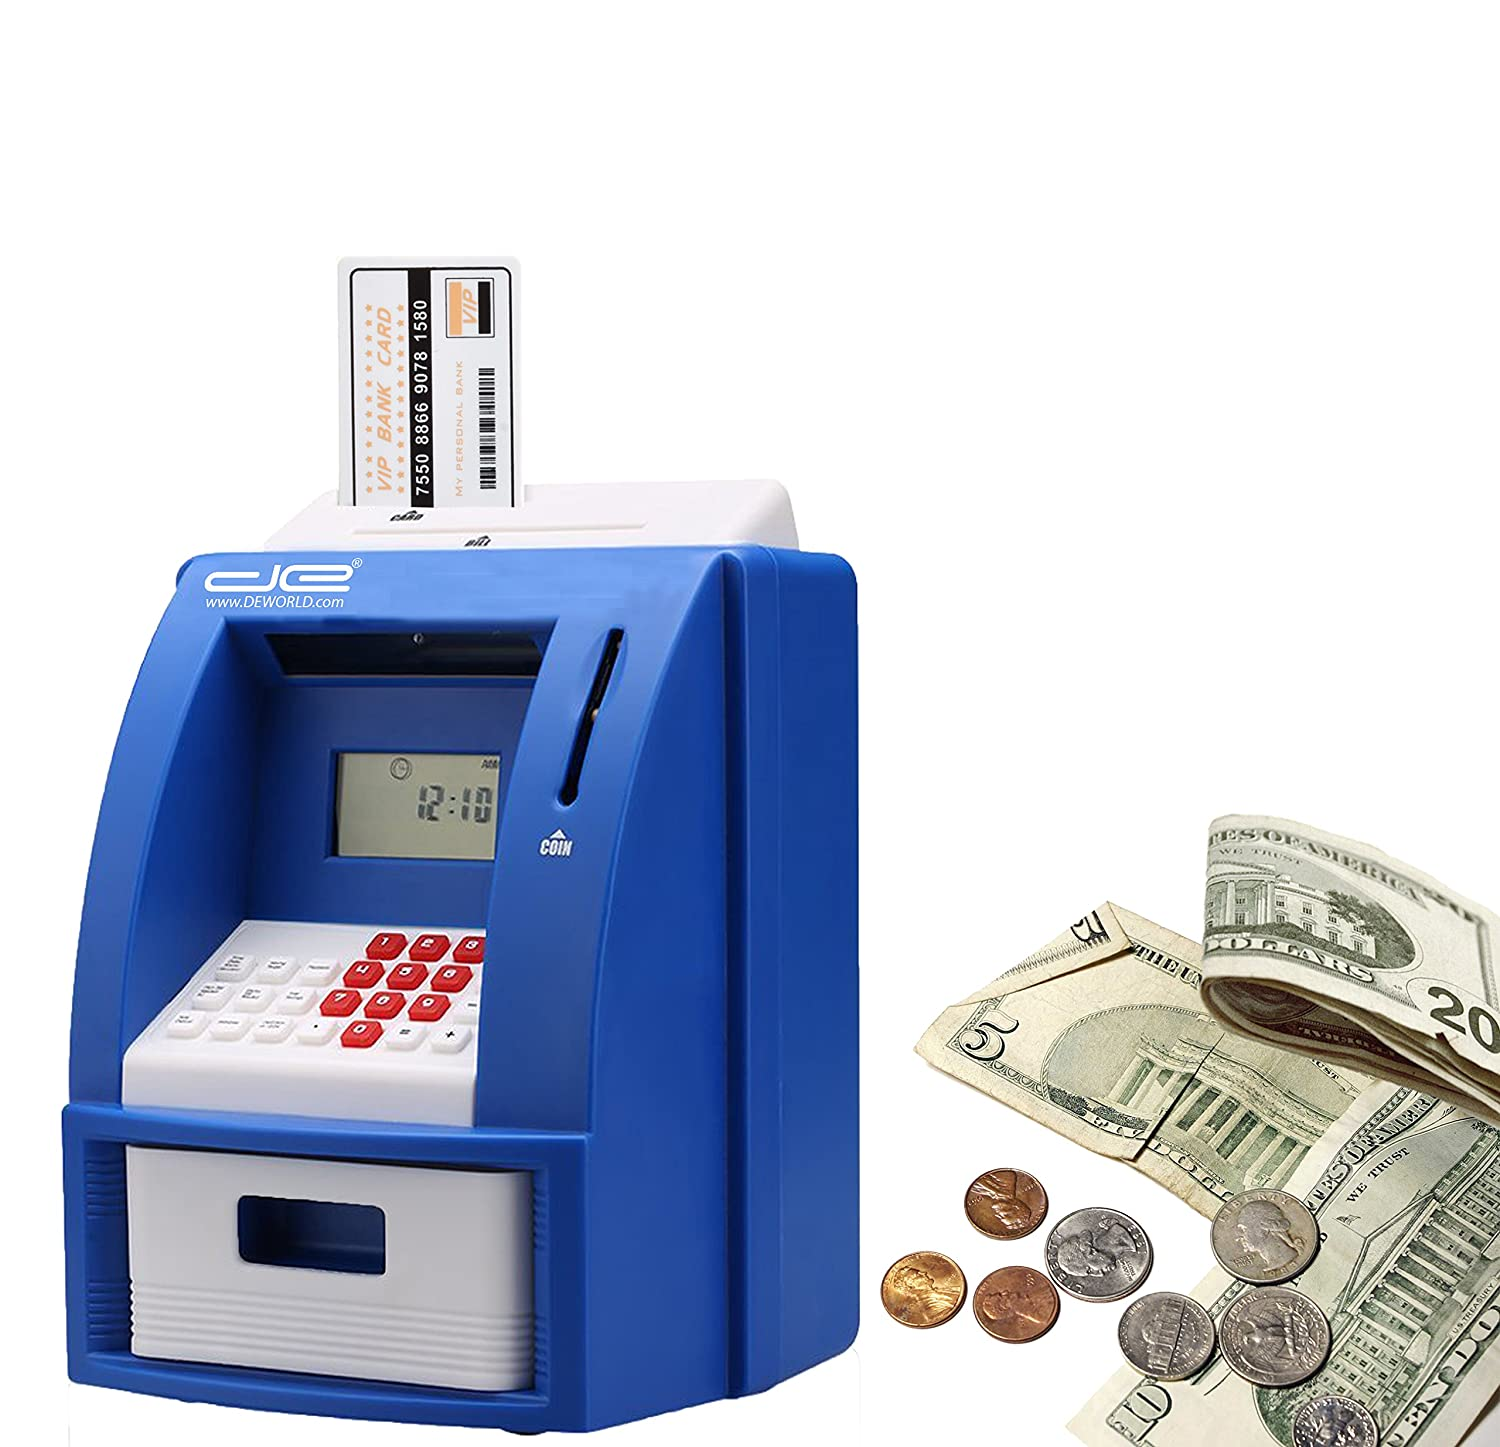 Coin Counter with Bill Slot Automatic U.S Blue Passcode Protected Banking Device for Kids Calculator Childrens Mini ATM Machine Safe Deposit Box Savings Bank Savings Goal Tracker